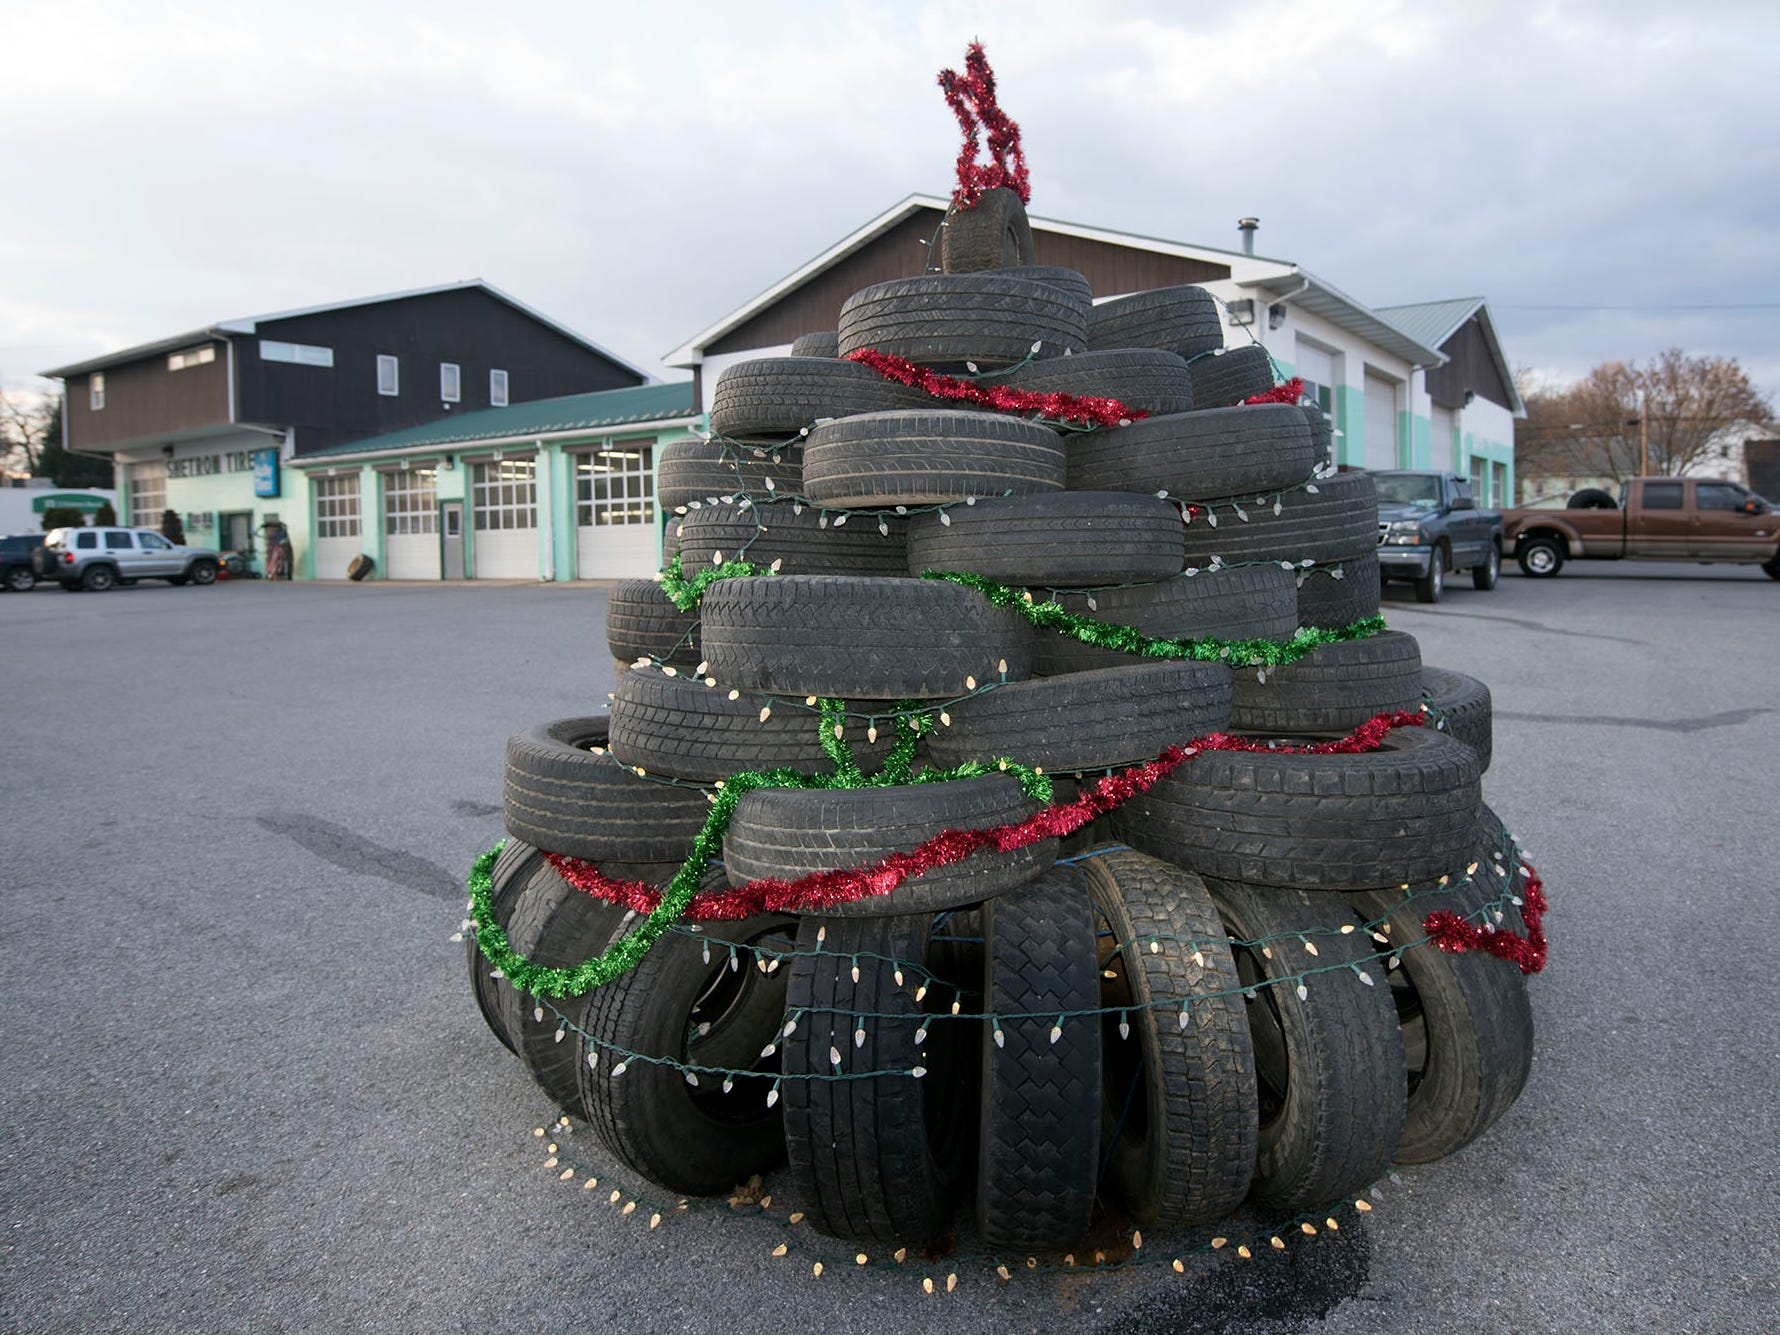 Shetron's Tire Service, Shippensburg, has a creative version of a Christmas Tree in their Orange Street lot.